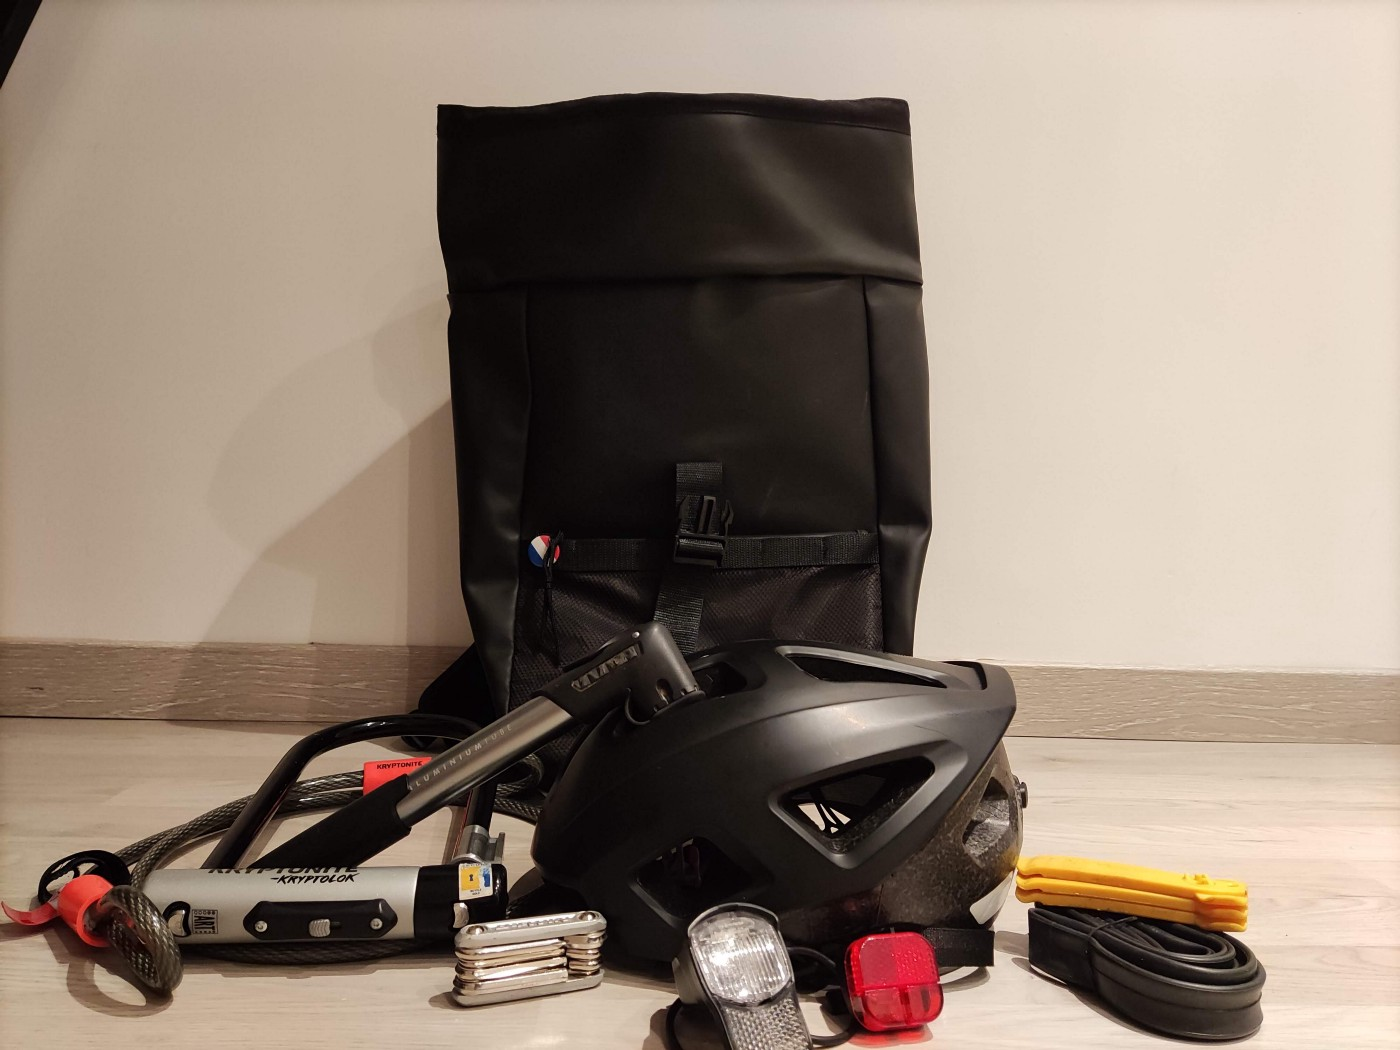 commuter pack for London